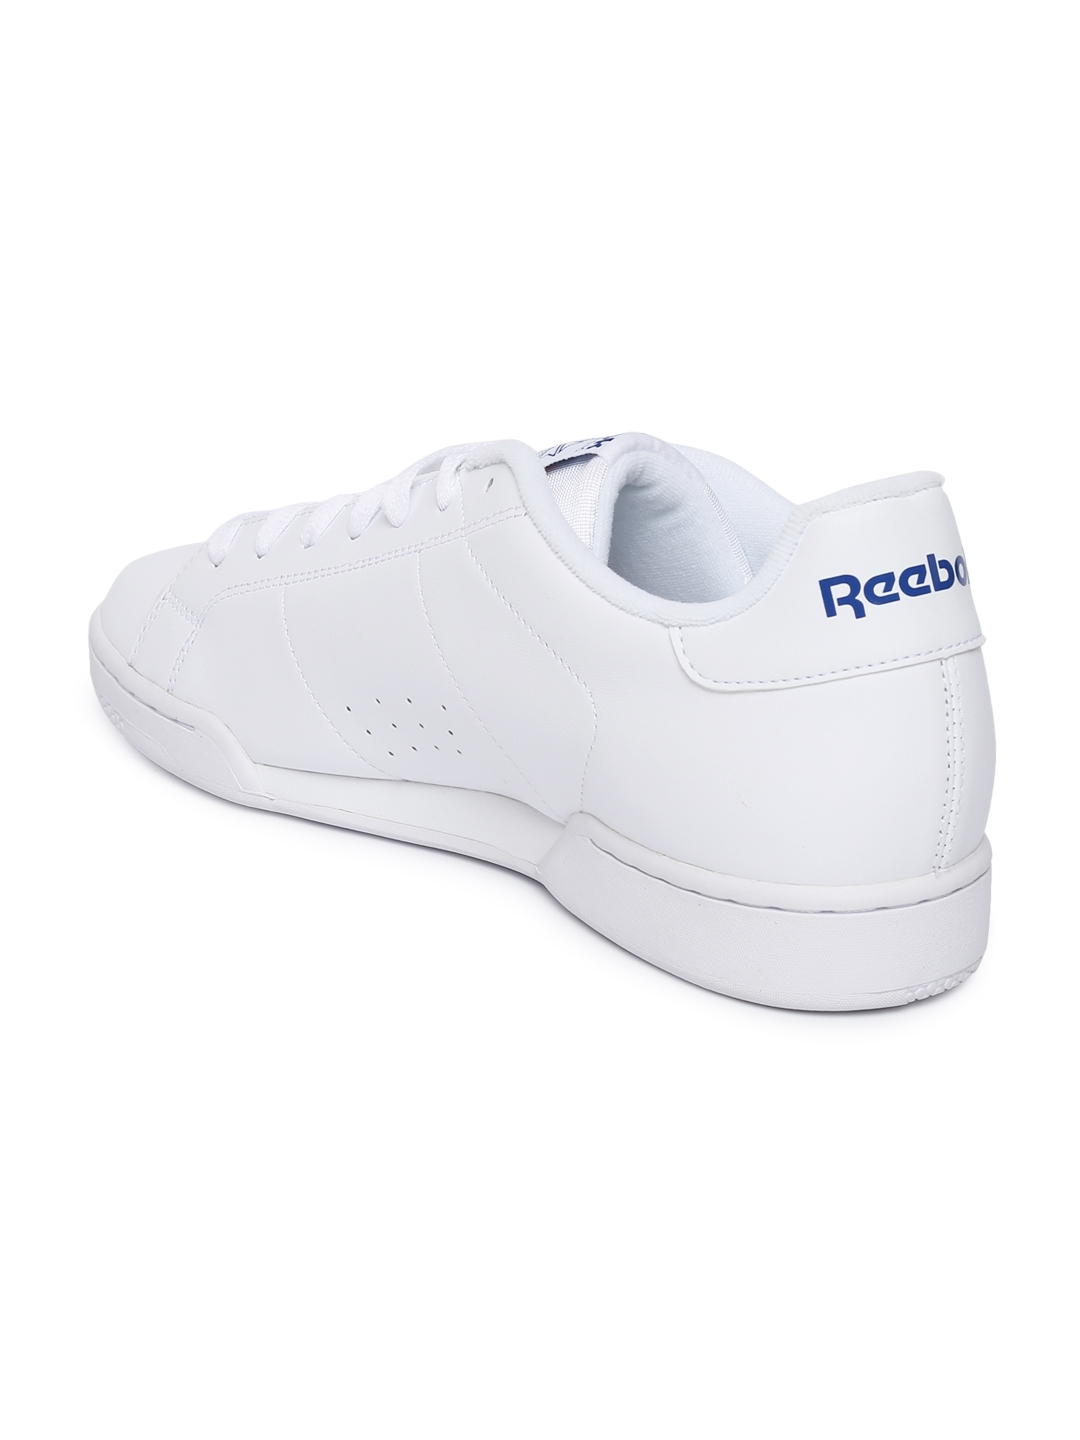 6e8ad85dd6668 Buy Reebok Classic Men White NPC II Sneakers - Casual Shoes for Men ...